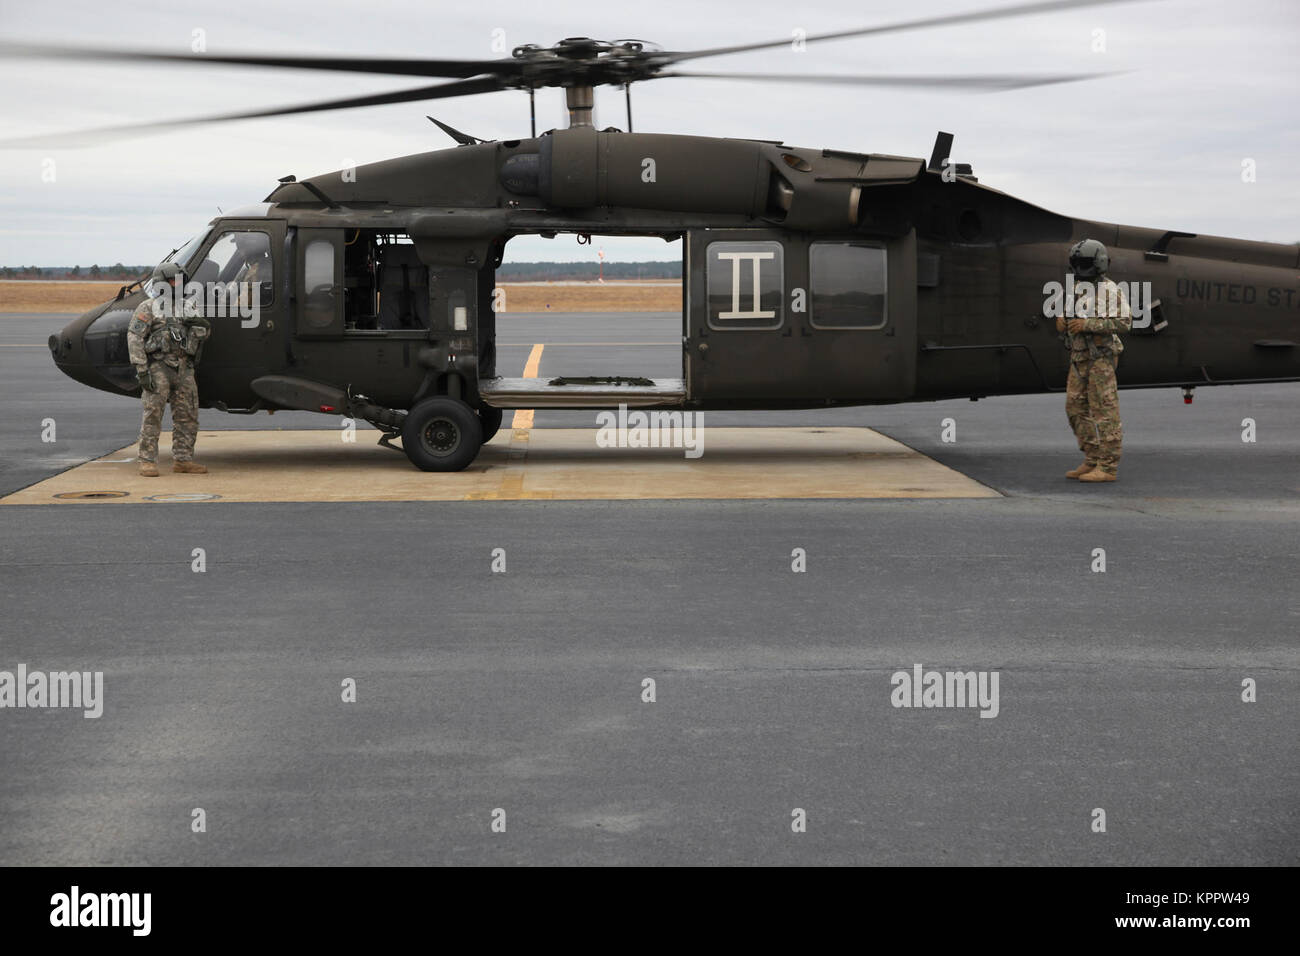 U S Army Reserve UH-60 Blackhawk helicopter pilots stand by their